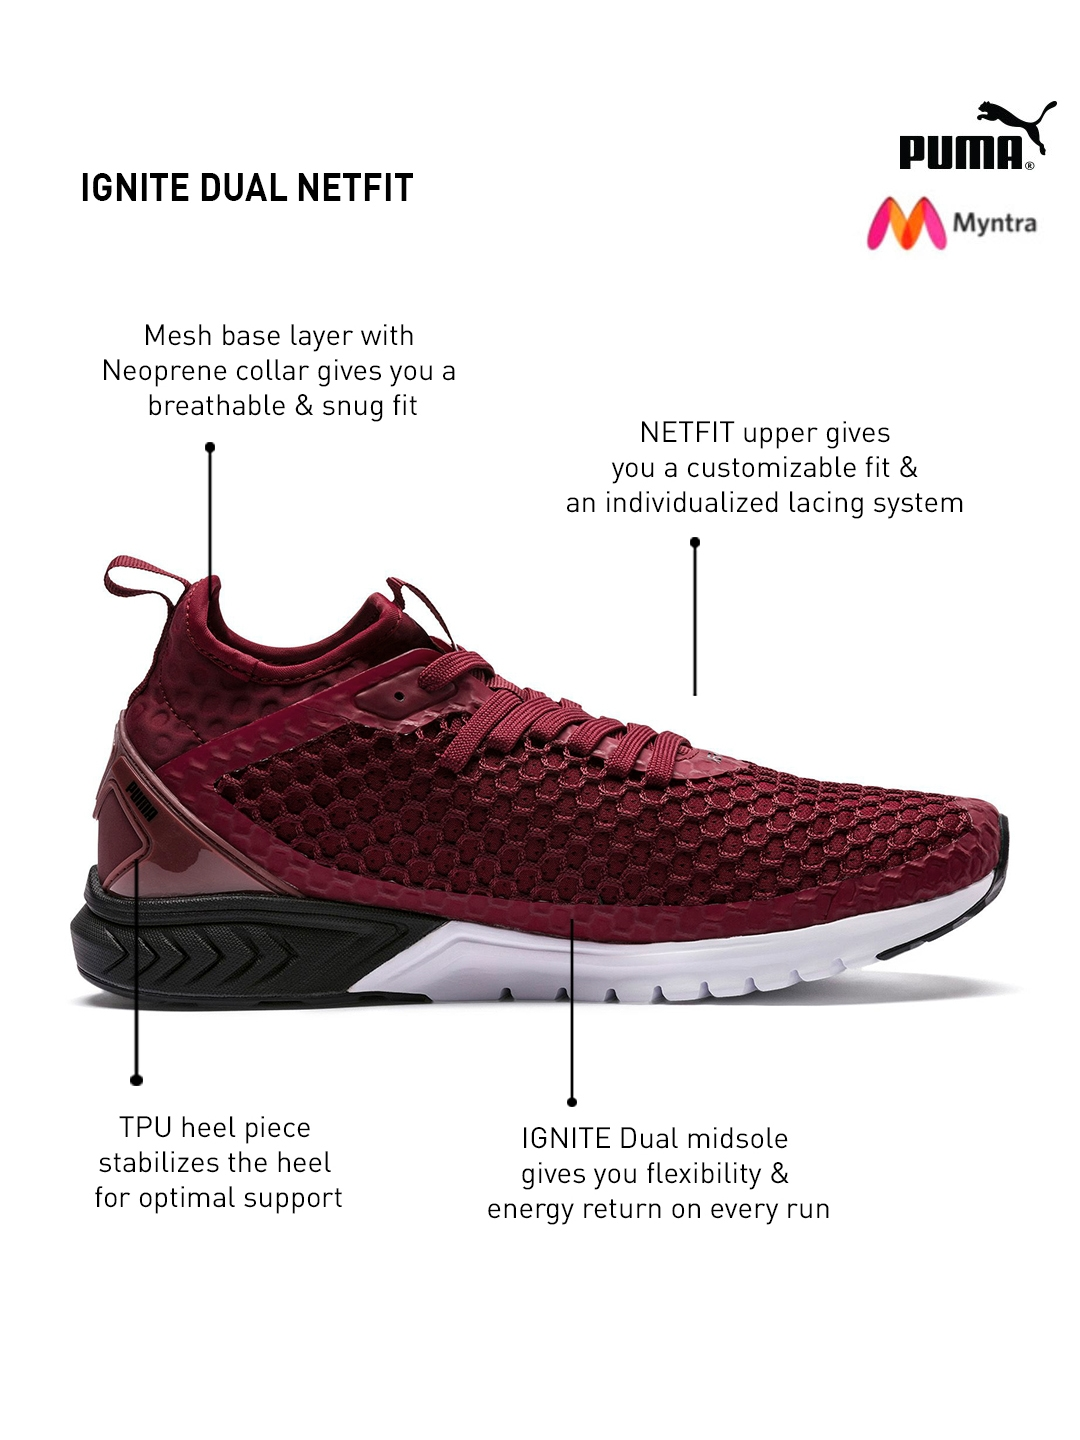 Shoes Ignite Puma Running Buy Men Maroon Sports Netfit Dual wO8Xkn0P